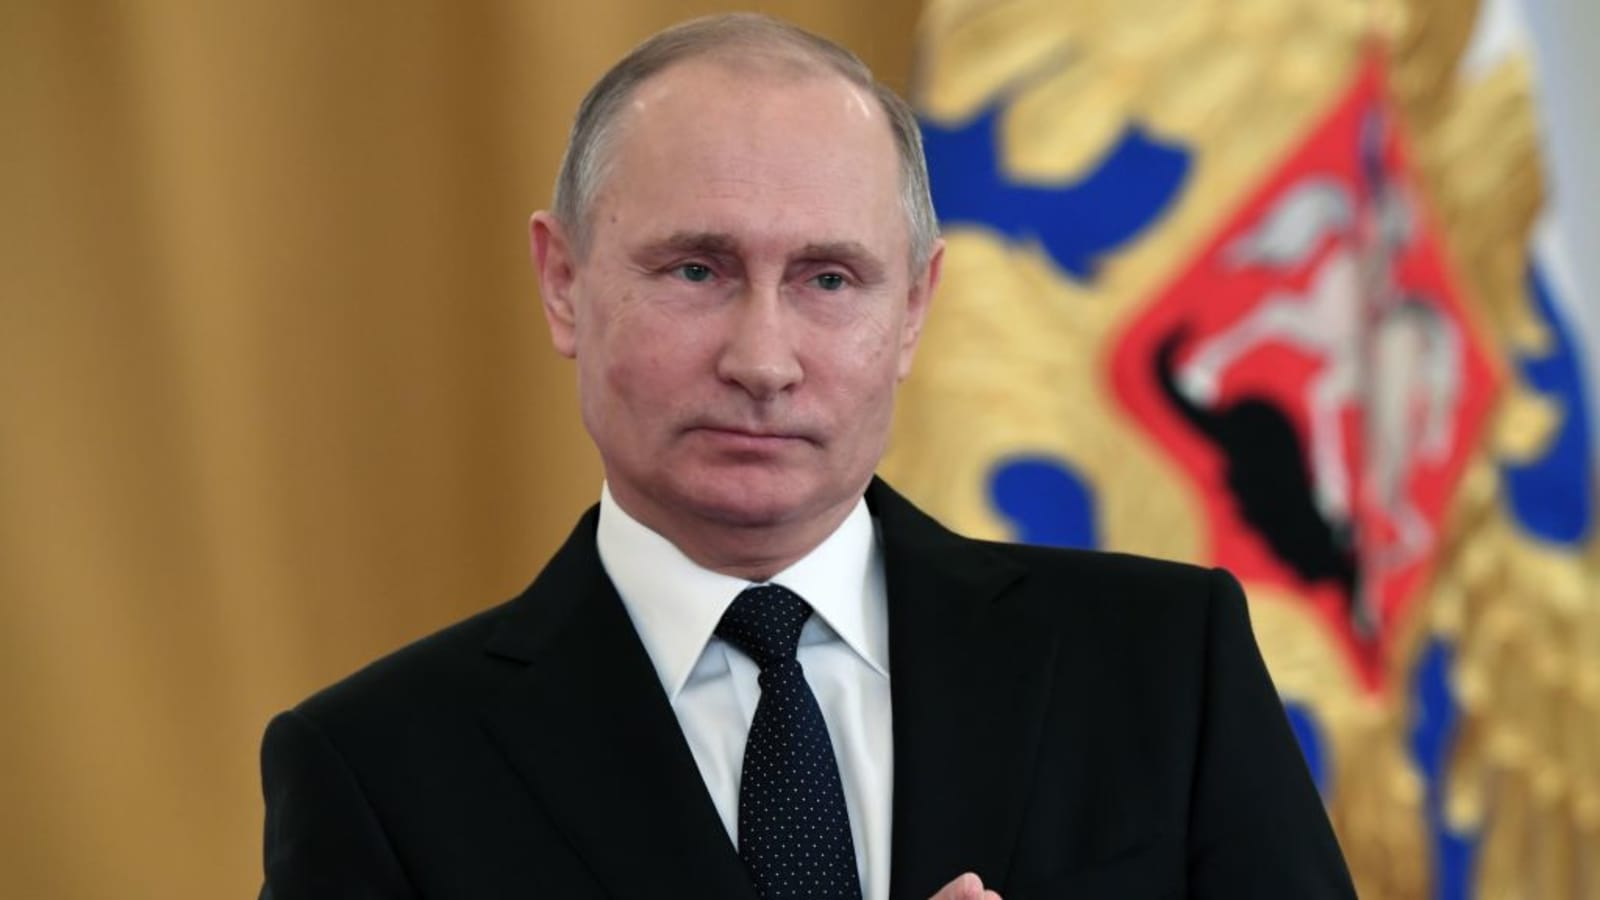 Vladimir Putin Muscles Into Africa Which Is Bad News For Us Interests